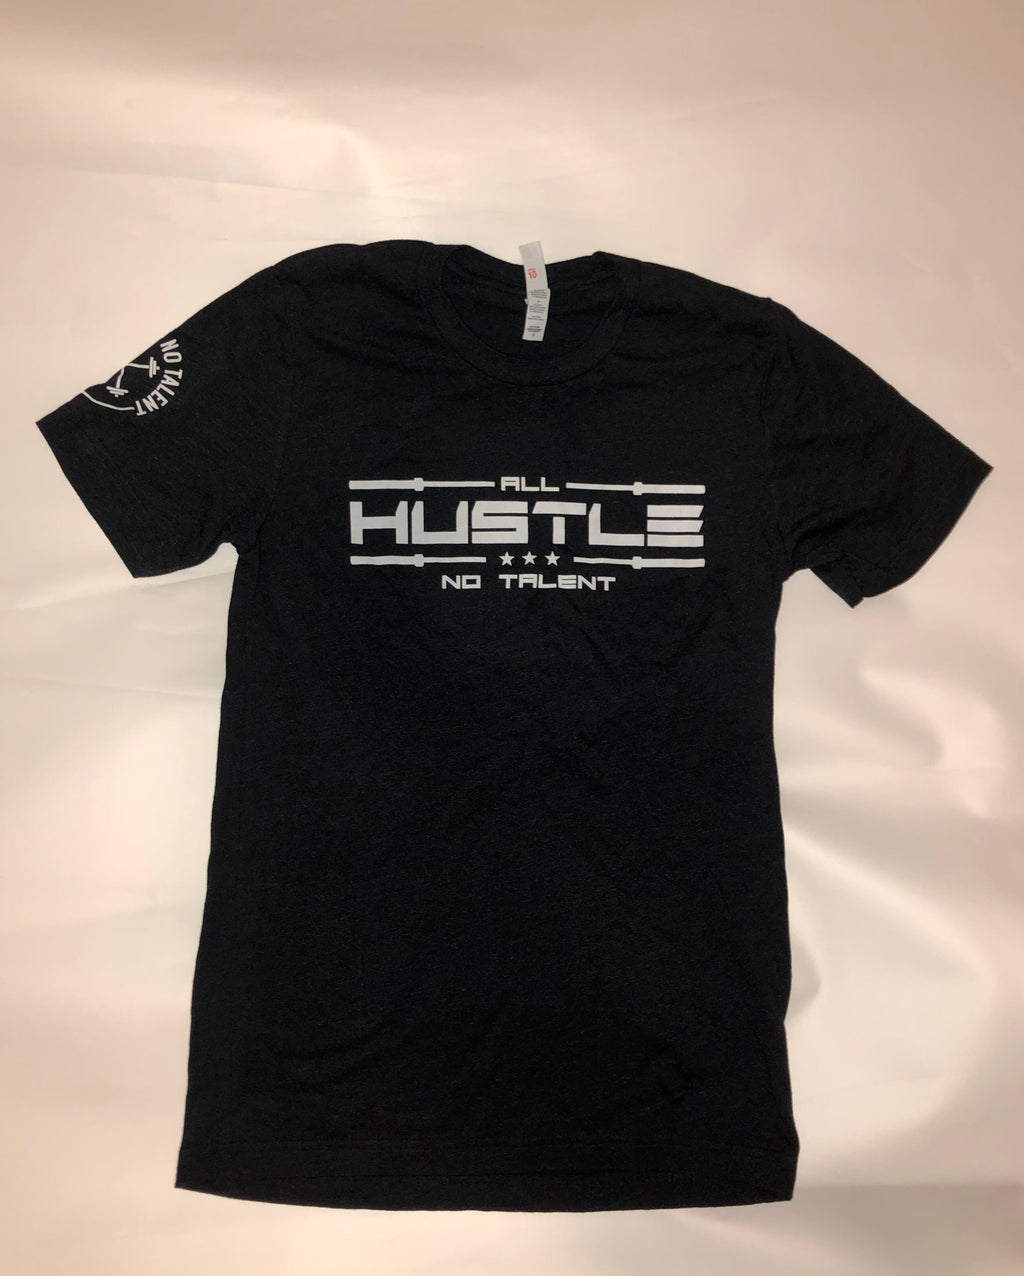 The All Hustlers' Black/Charcoal T-Shirt